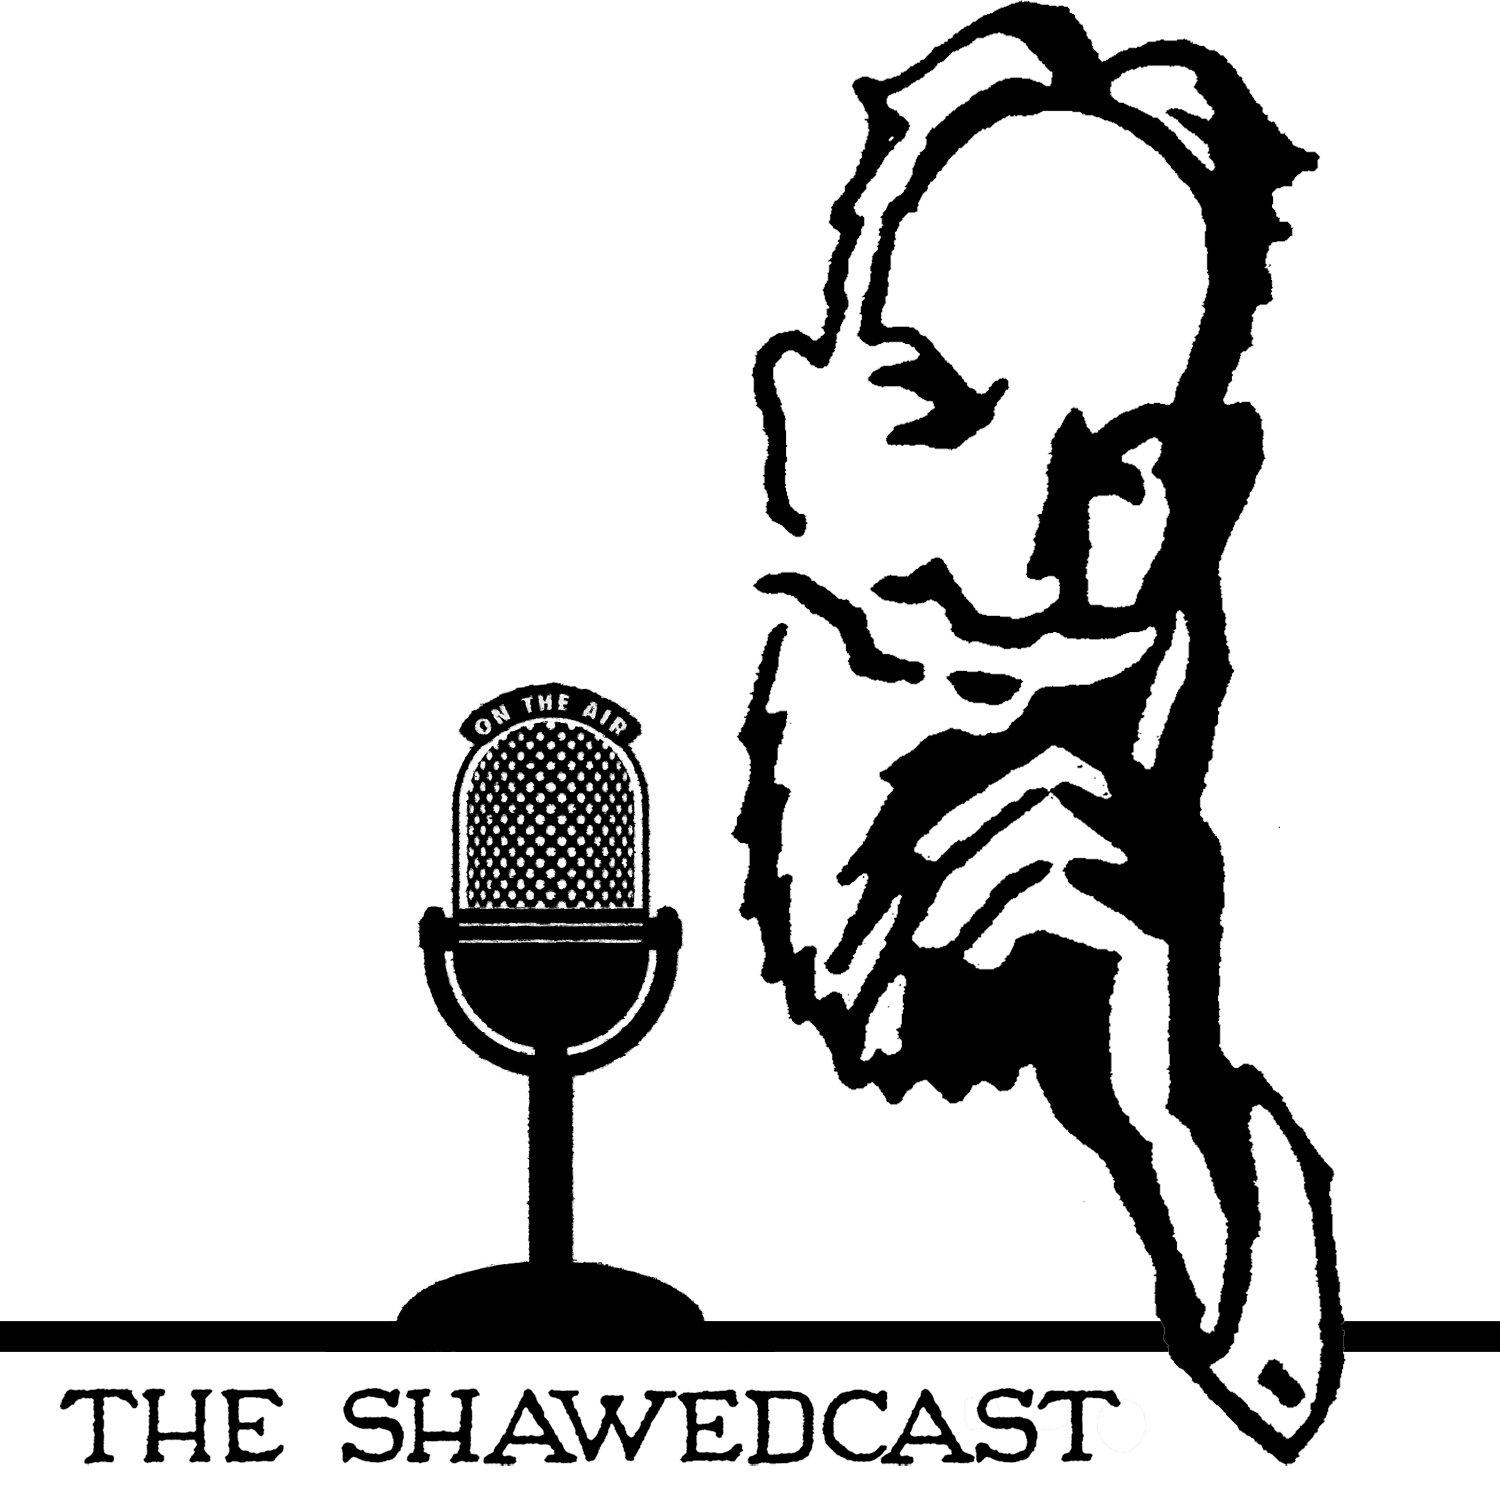 The Shawedcast